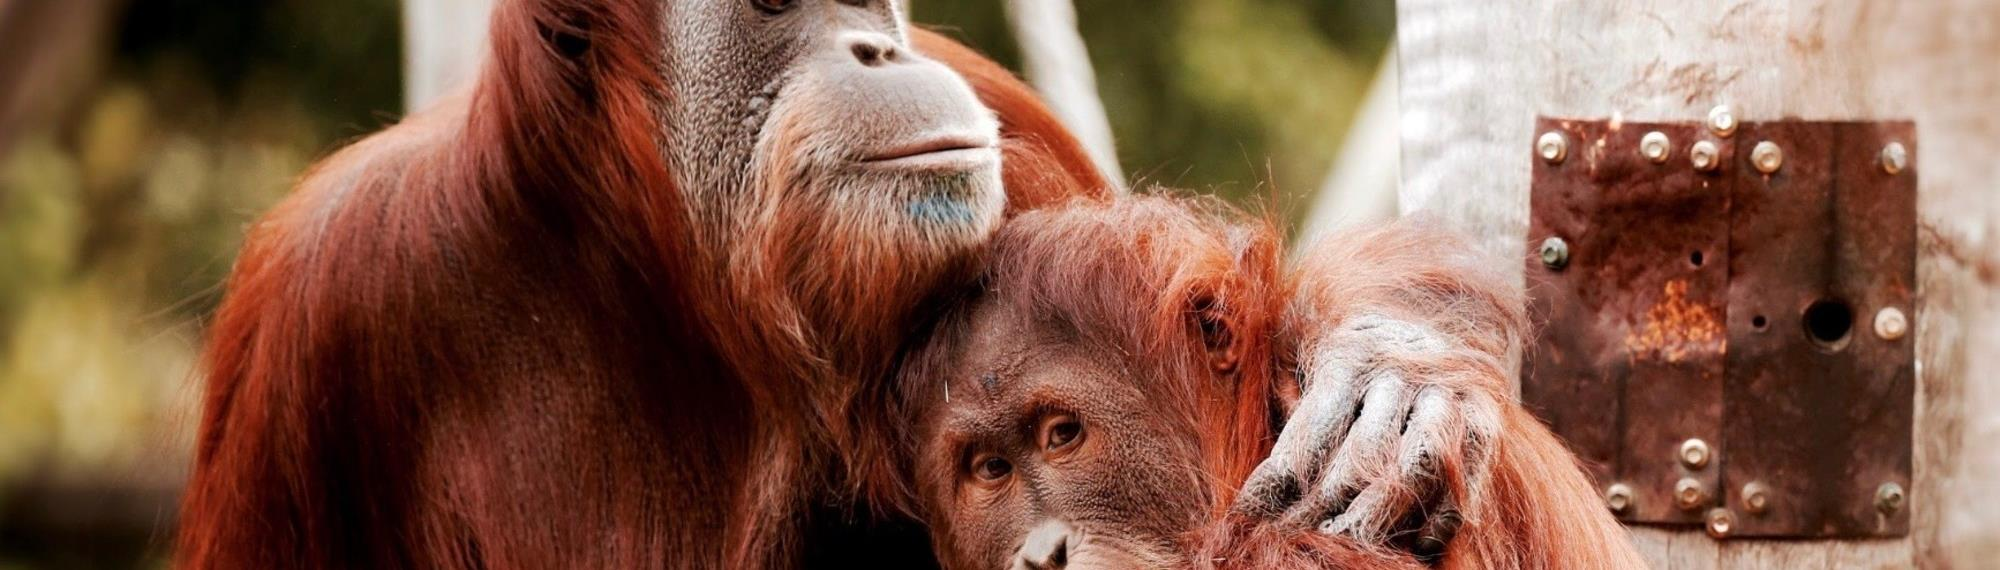 Two Sumatran Orang-utans hugging each other. They are orange in colour.